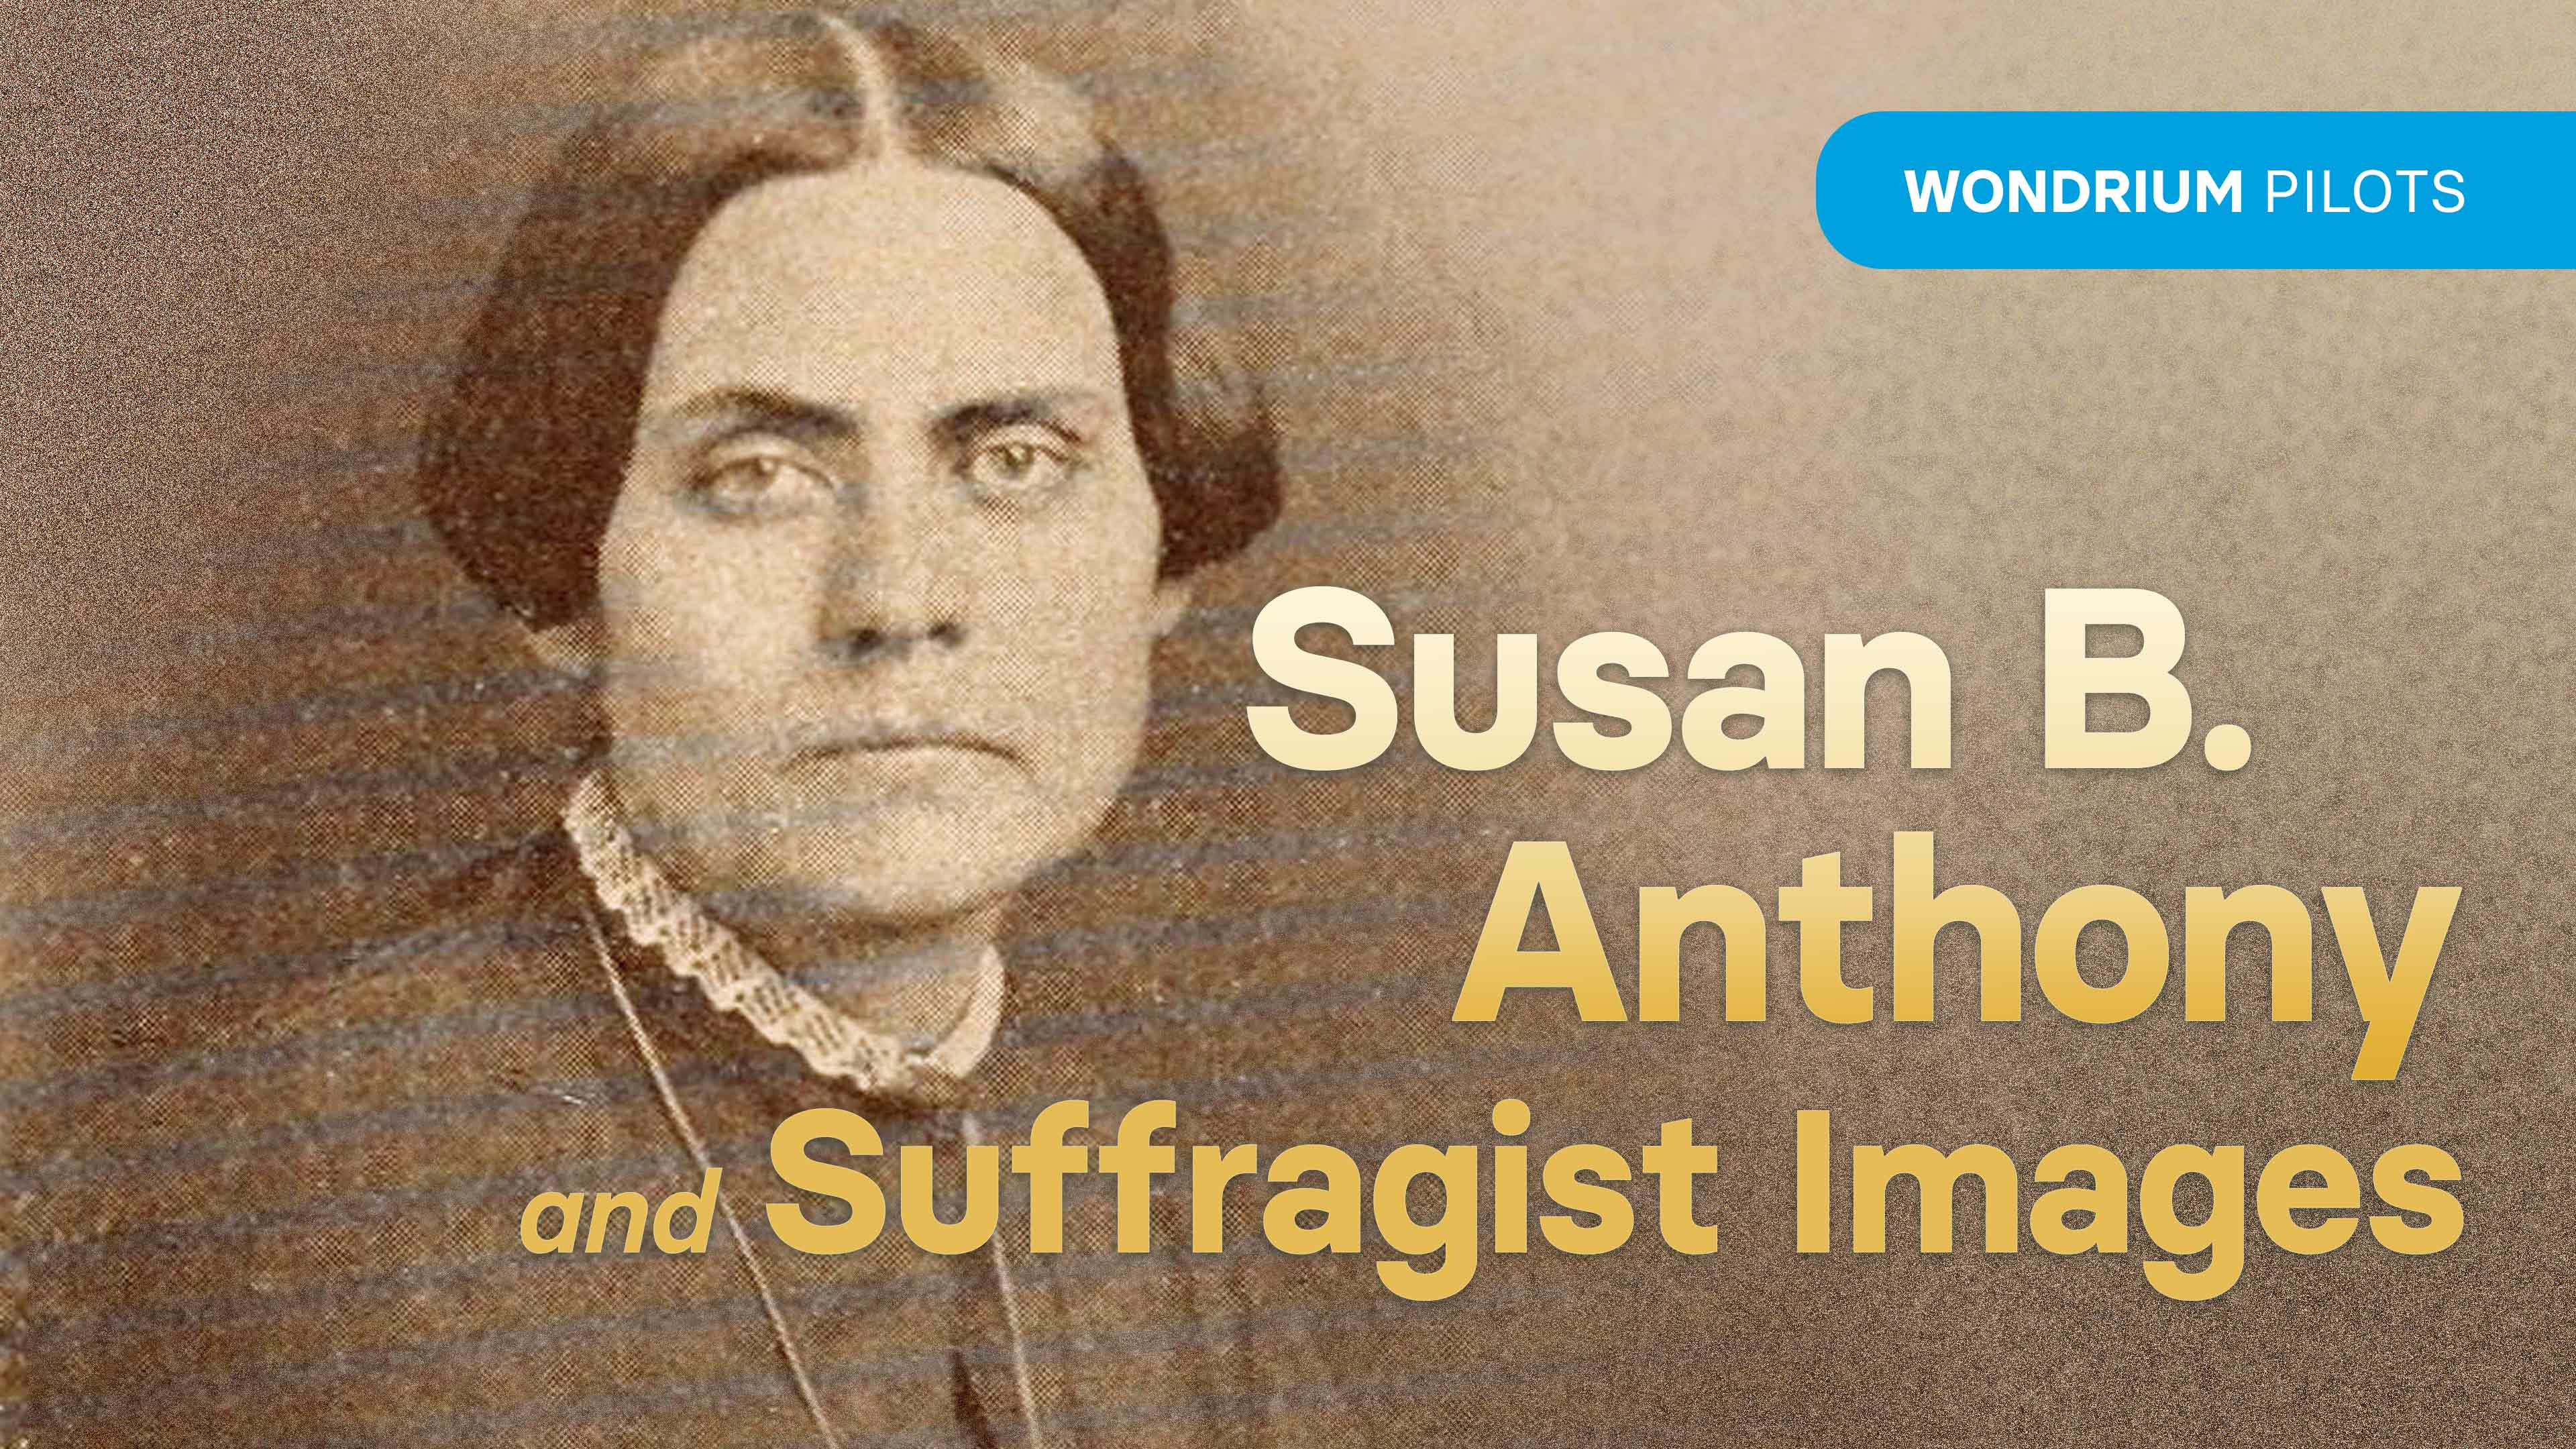 Susan B. Anthony and Suffragist Images